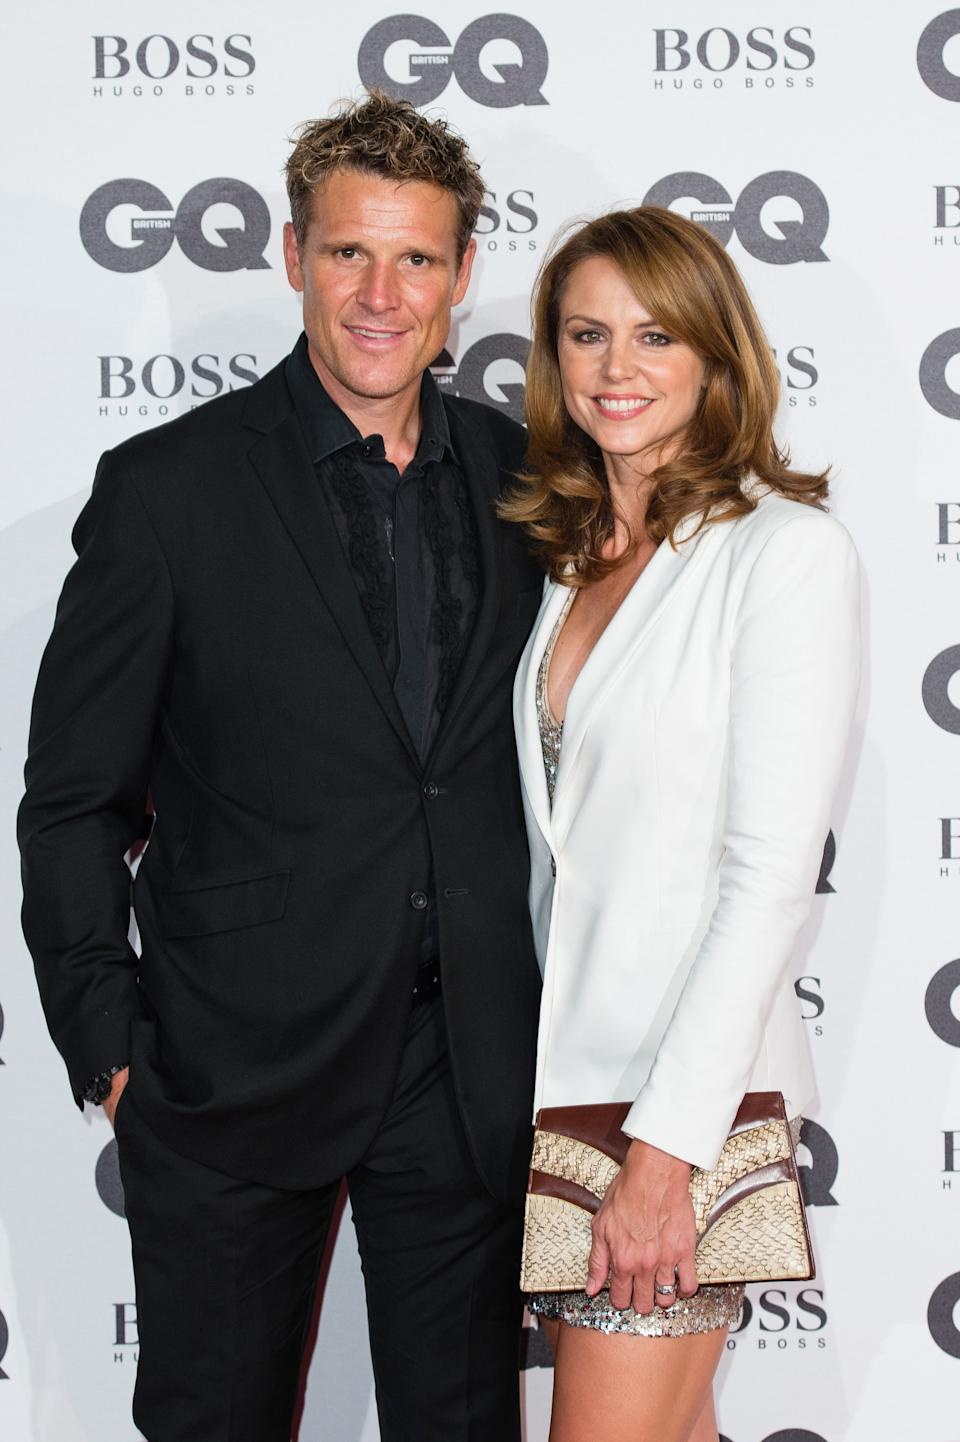 LONDON, ENGLAND - SEPTEMBER 06:  (L-R) James Cracknell and Beverley Turner arrive for GQ Men Of The Year Awards 2016 at Tate Modern on September 6, 2016 in London, England.  (Photo by Jeff Spicer/Getty Images)